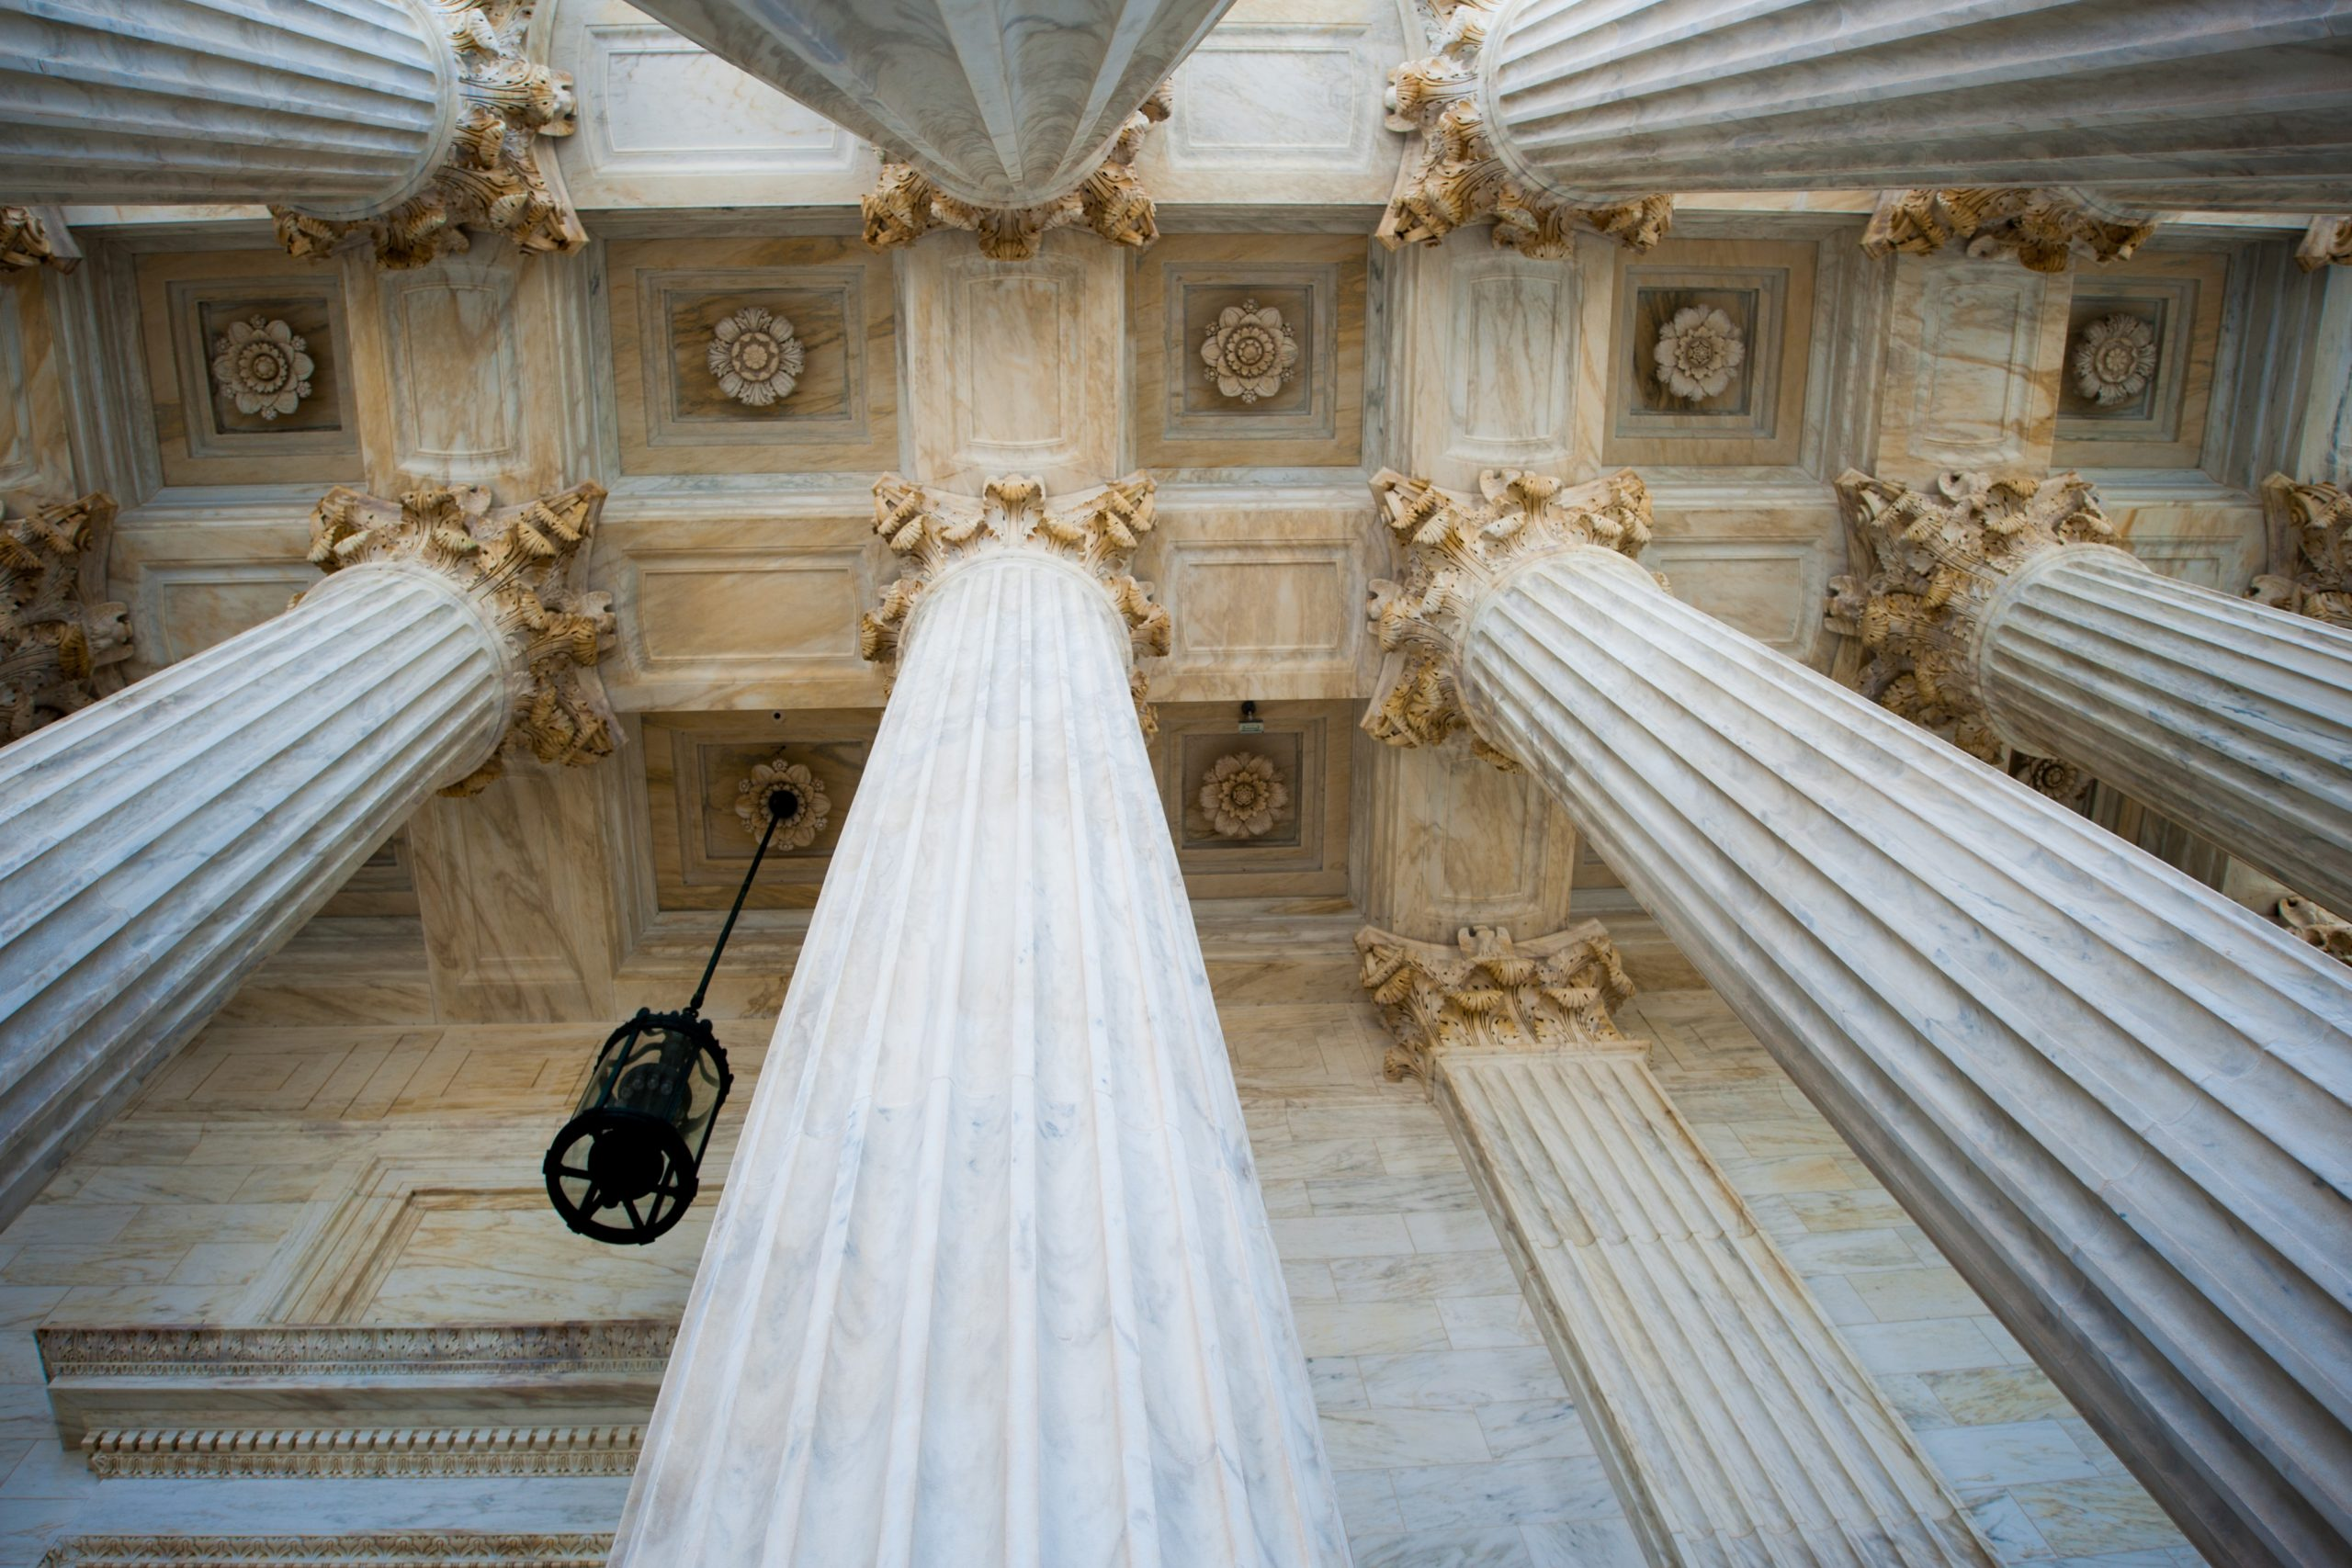 Columns at the U.S. Supreme Court